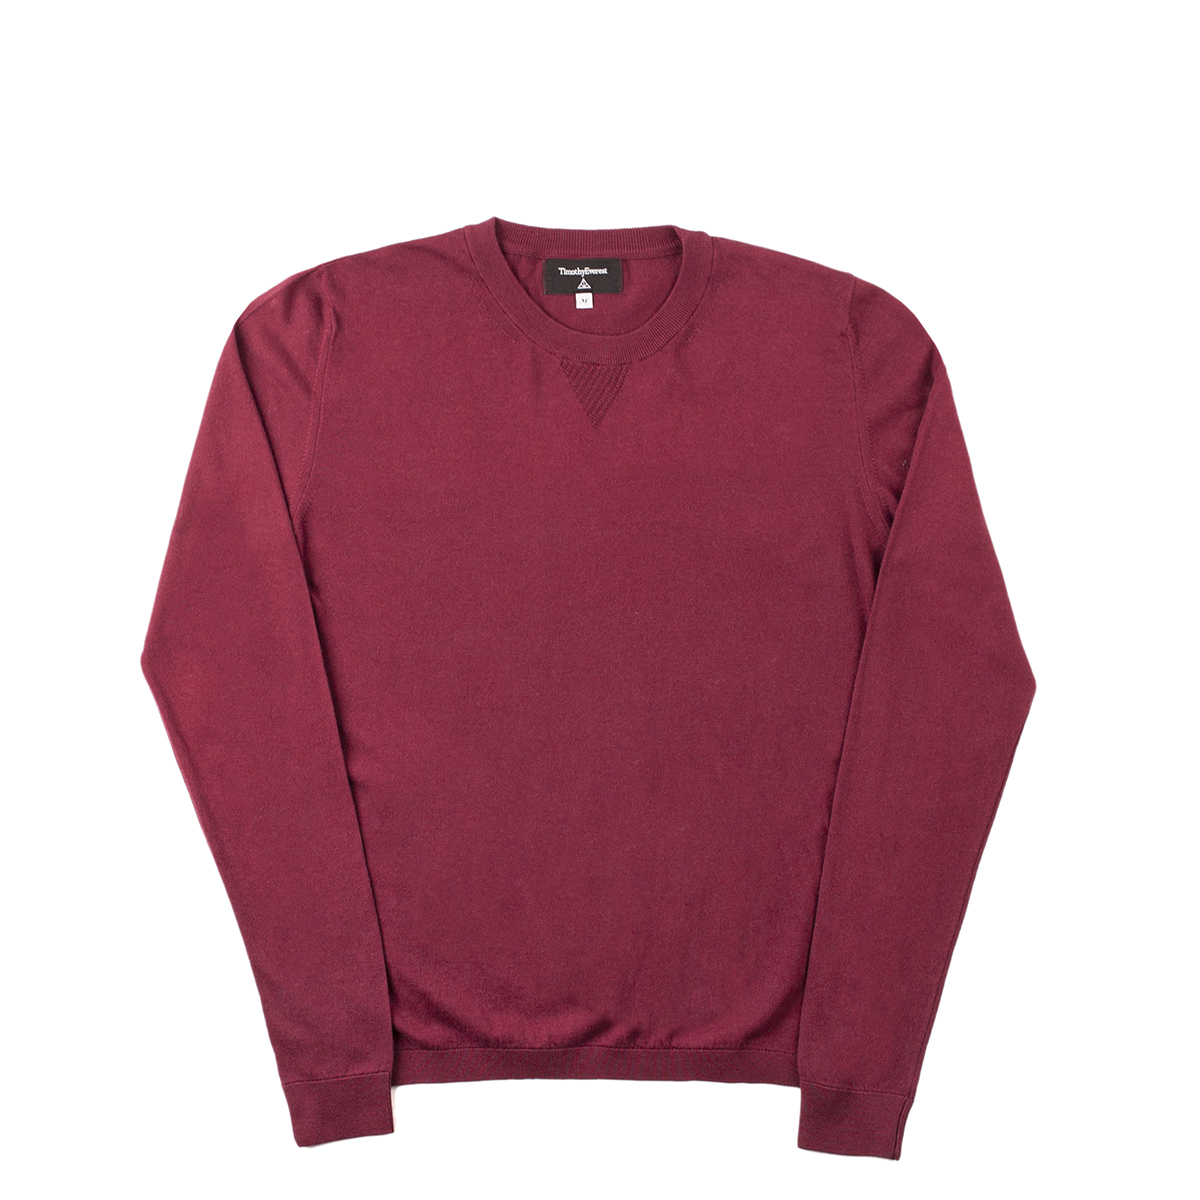 Timothy Everest Burgundy Lightweight Cotton/Cashmere Jumper